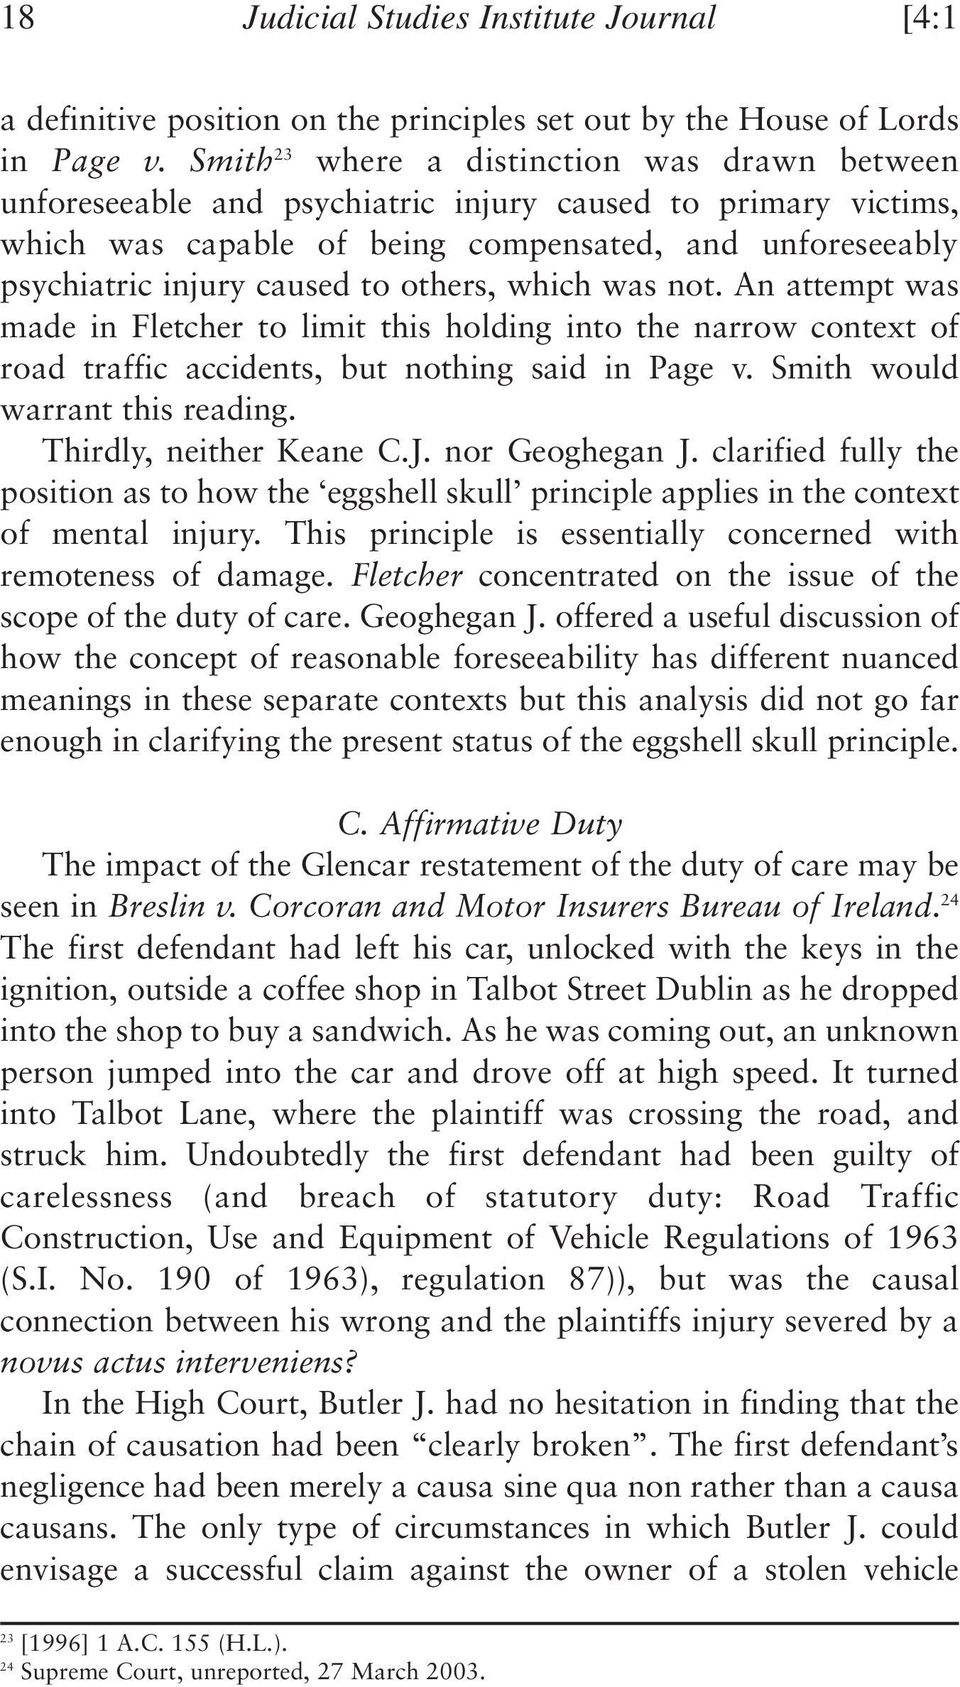 others, which was not. An attempt was made in Fletcher to limit this holding into the narrow context of road traffic accidents, but nothing said in Page v. Smith would warrant this reading.